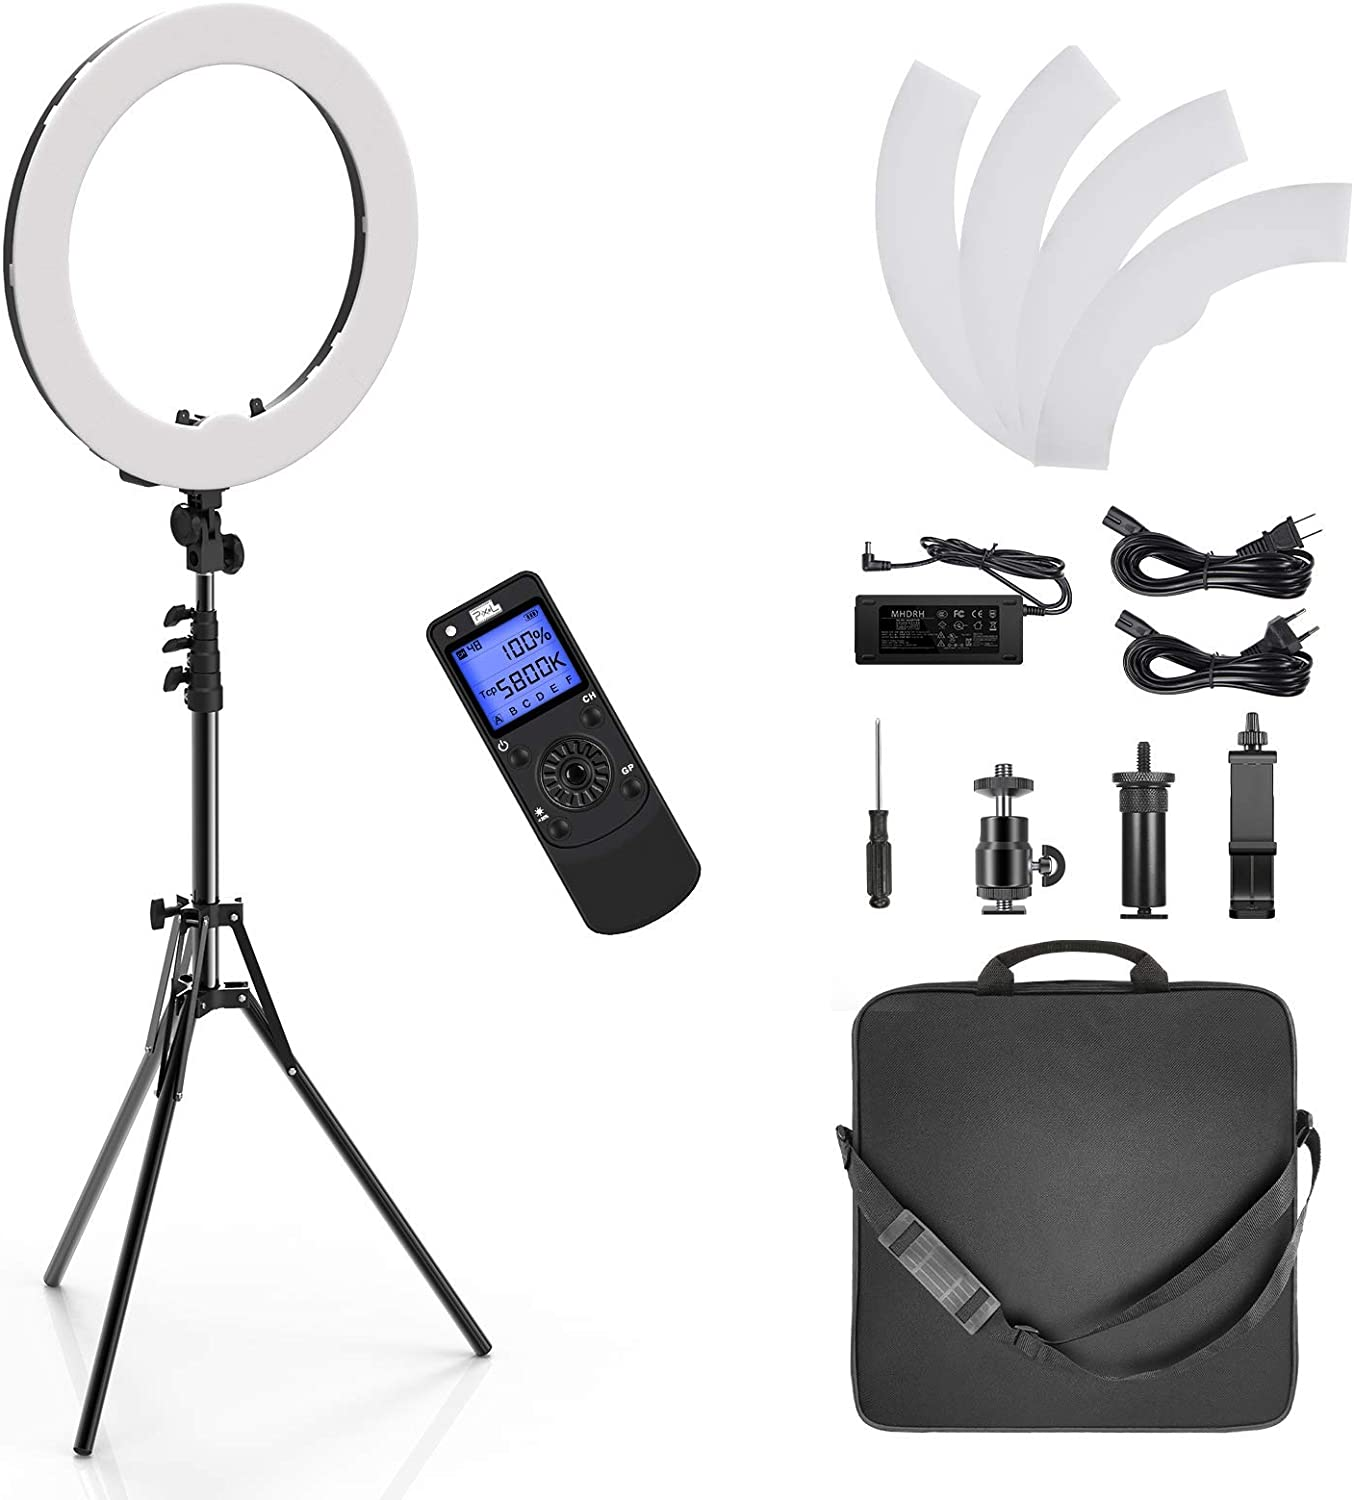 Upgrade Version 55W 3000-5800K Dimmable Circle LED Light with Stand for Camera Designed with 2.1 inch LCD Screen /& Portable Carring Bag PIXEL 19 inch Ring Light Youtube Selfie Makeup Videos